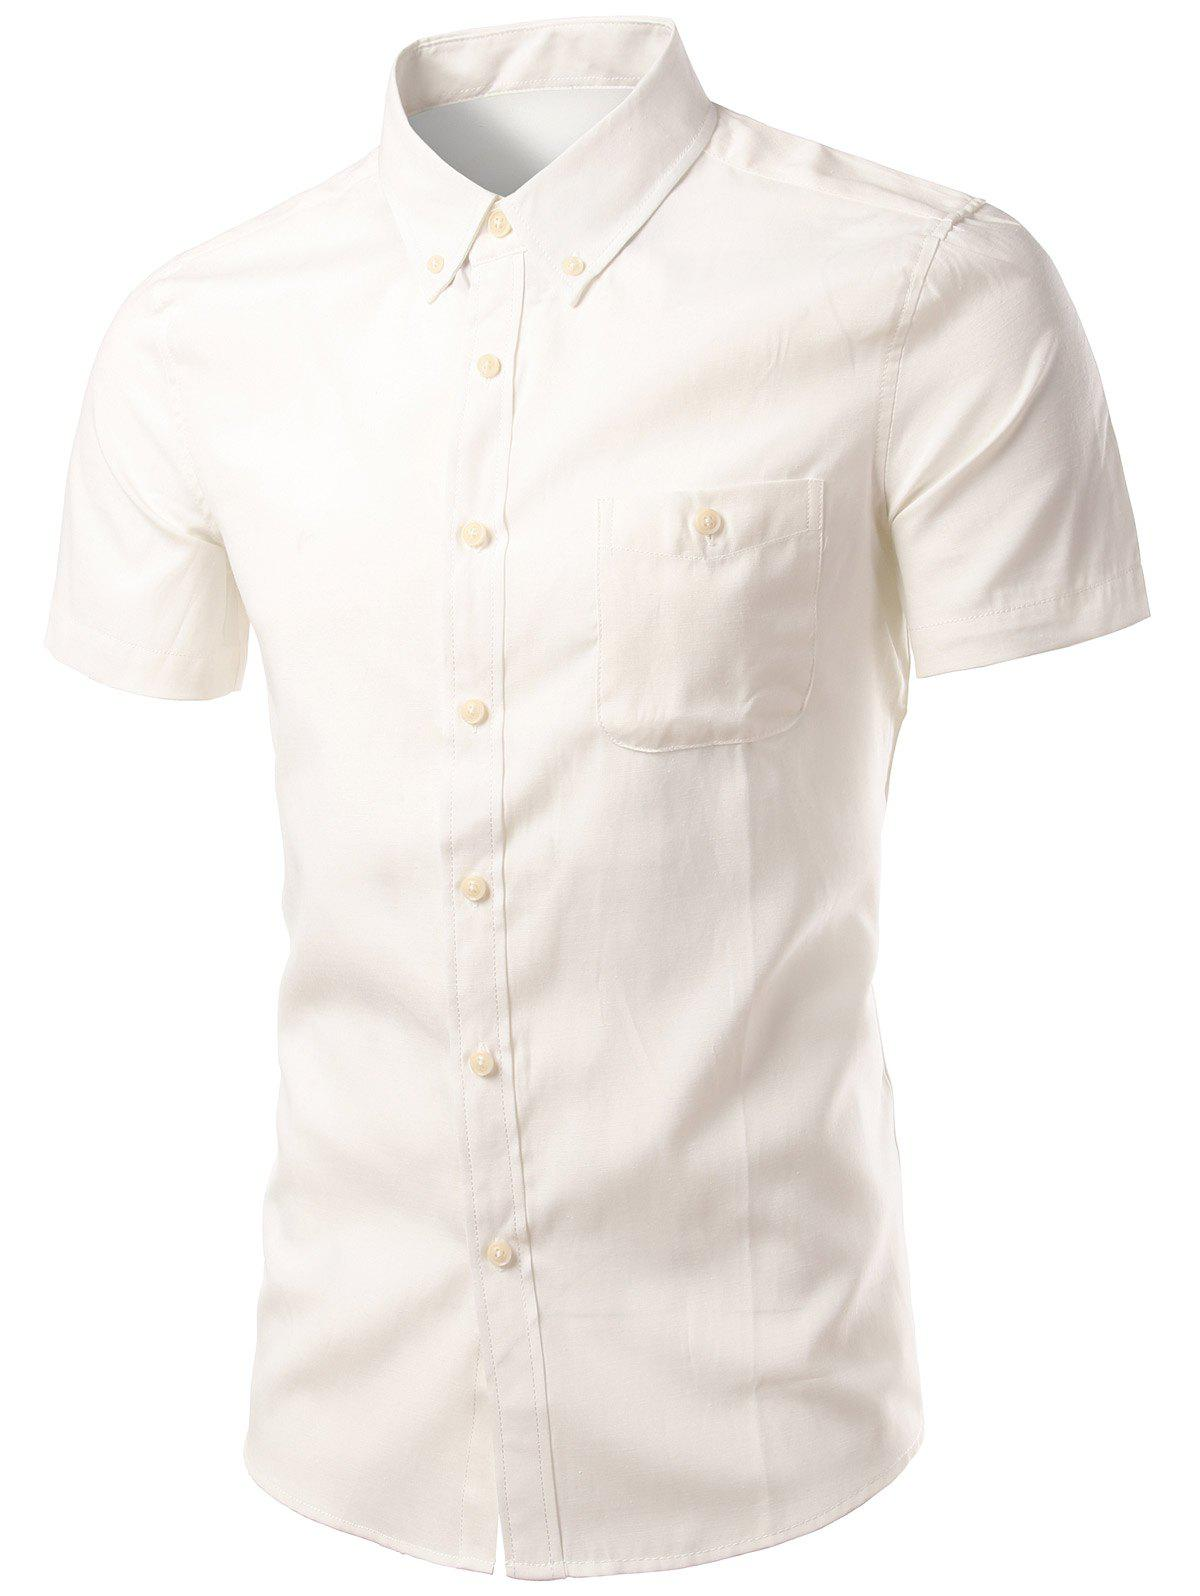 Plus Size Button-Down Short Sleeve Slimming Men's Shirt от Dresslily.com INT